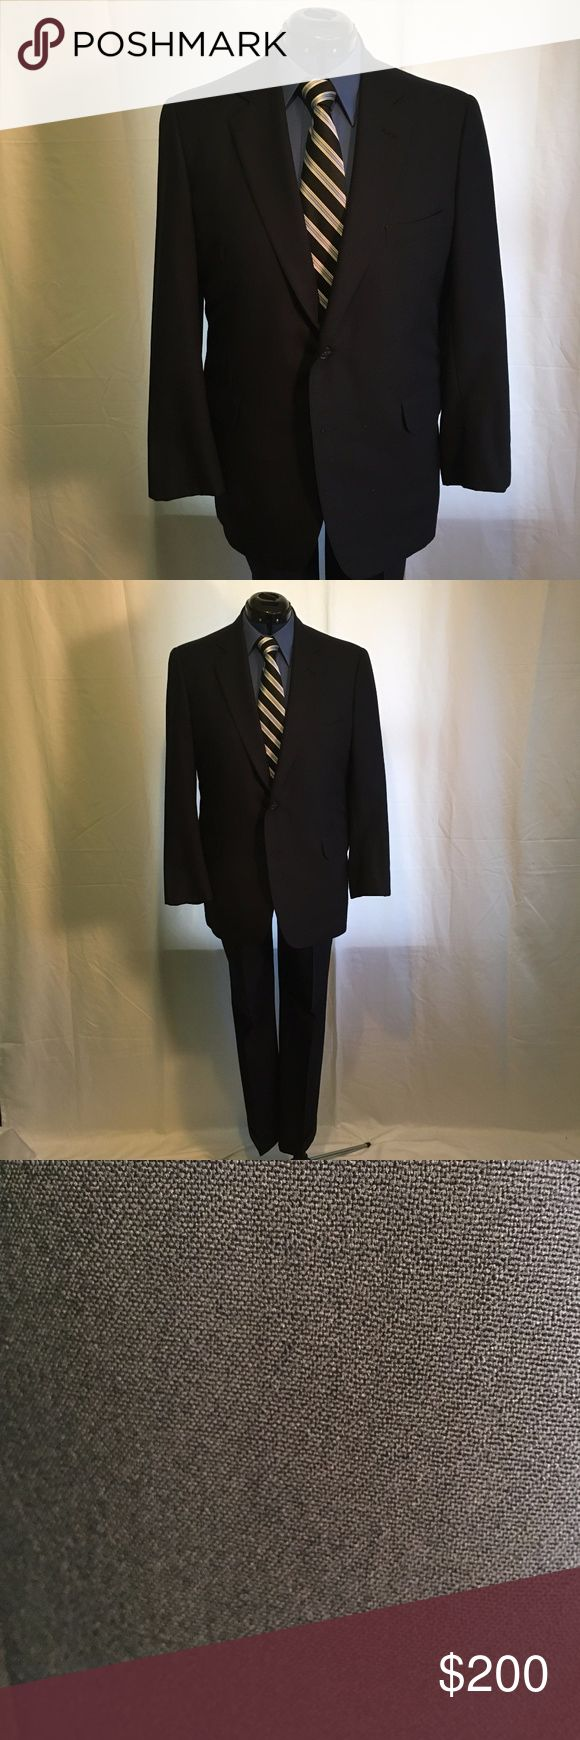 """Brooks Brothers Suit Brand: Brooks Brothers  Size: 41 Reg  Condition: Gently Used  Retail Price: $1198  Color: Black Armpit to armpit: 23"""" Waist: 22"""" Hem:22""""  Length Shoulder to Hem: 31"""" Sleeve Length (Top of shoulder to cuff): 23 1/2"""" Sleeve Opening: 6"""" Shoulder to Shoulder: 19""""  Aligned Waist: 18"""" Hips at Widest: 21"""" Rise: 12 1/2"""" Inseam: 30 1/2"""" Leg Opening: 9"""" Closure: Button and zipper Brooks Brothers Suits & Blazers Suits"""